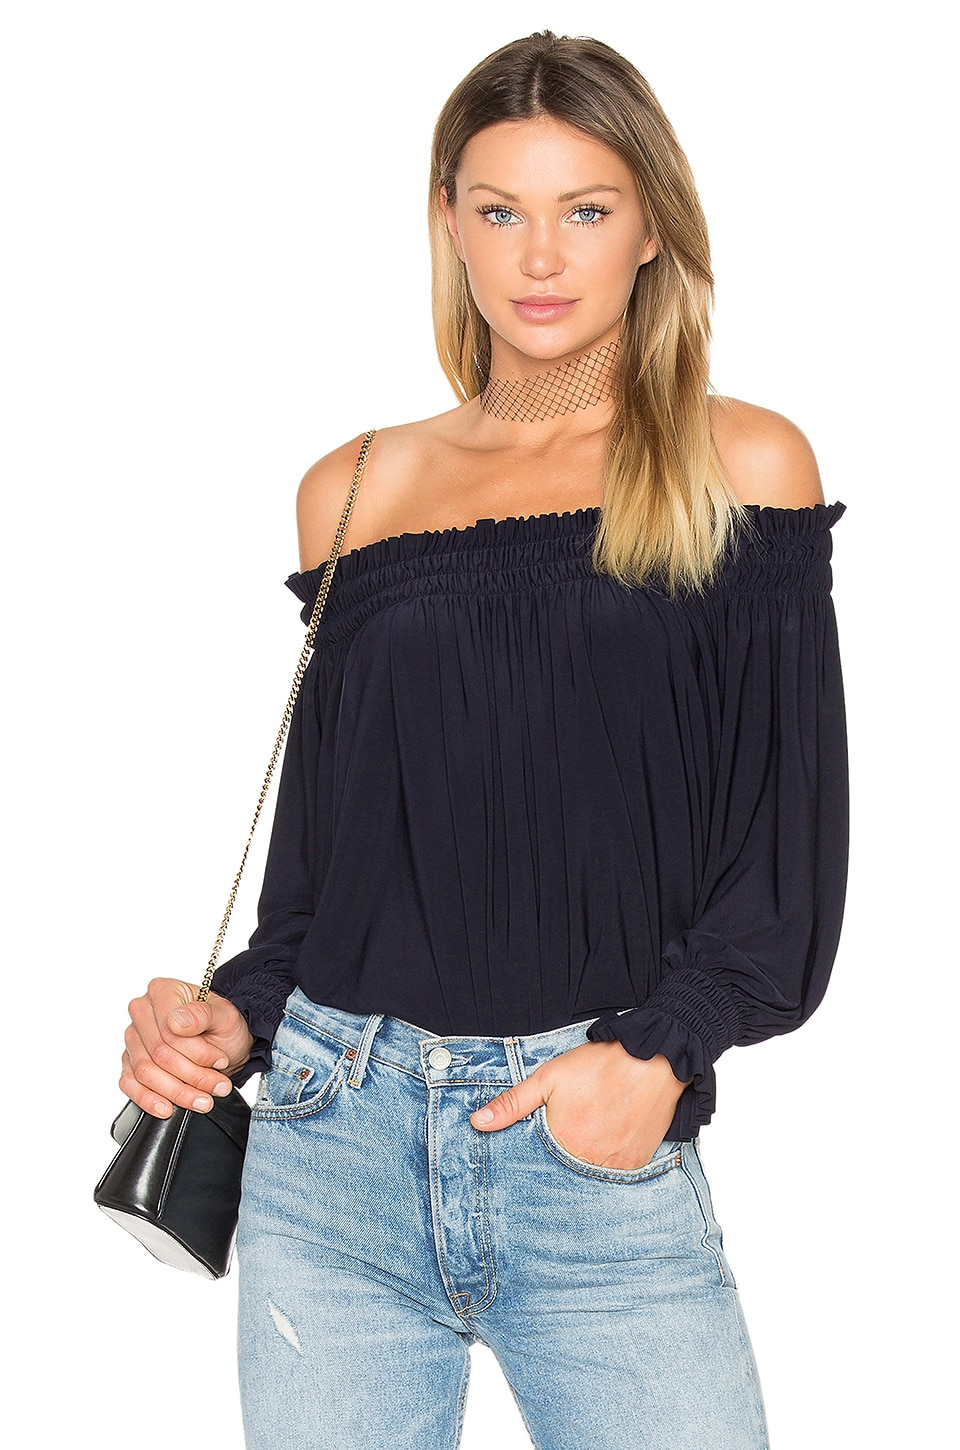 Norma Kamali Peasant Top in Midnight